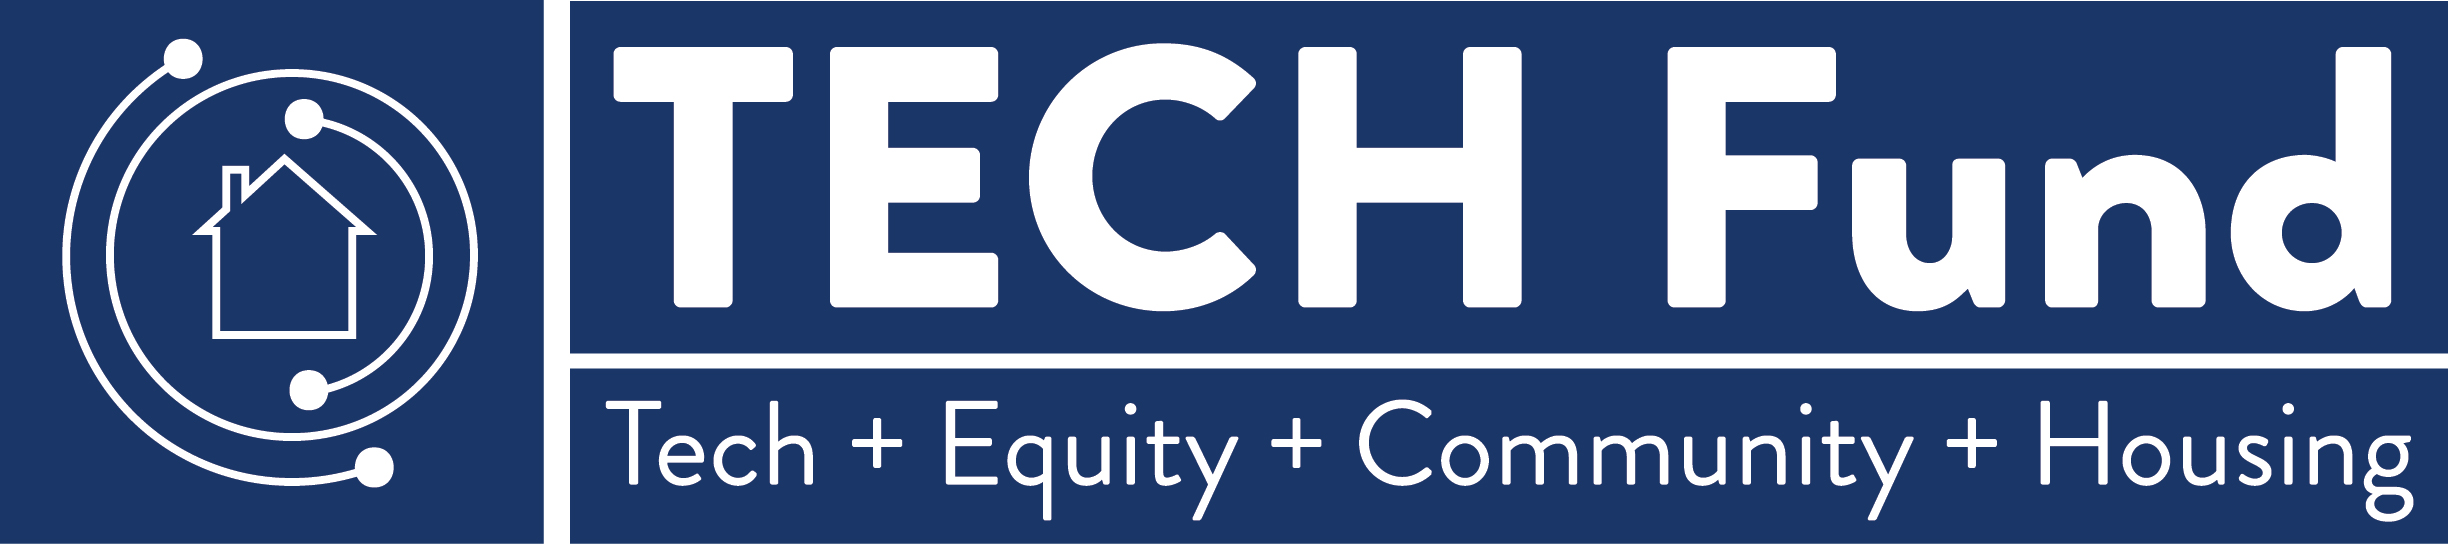 TECH Fund logo